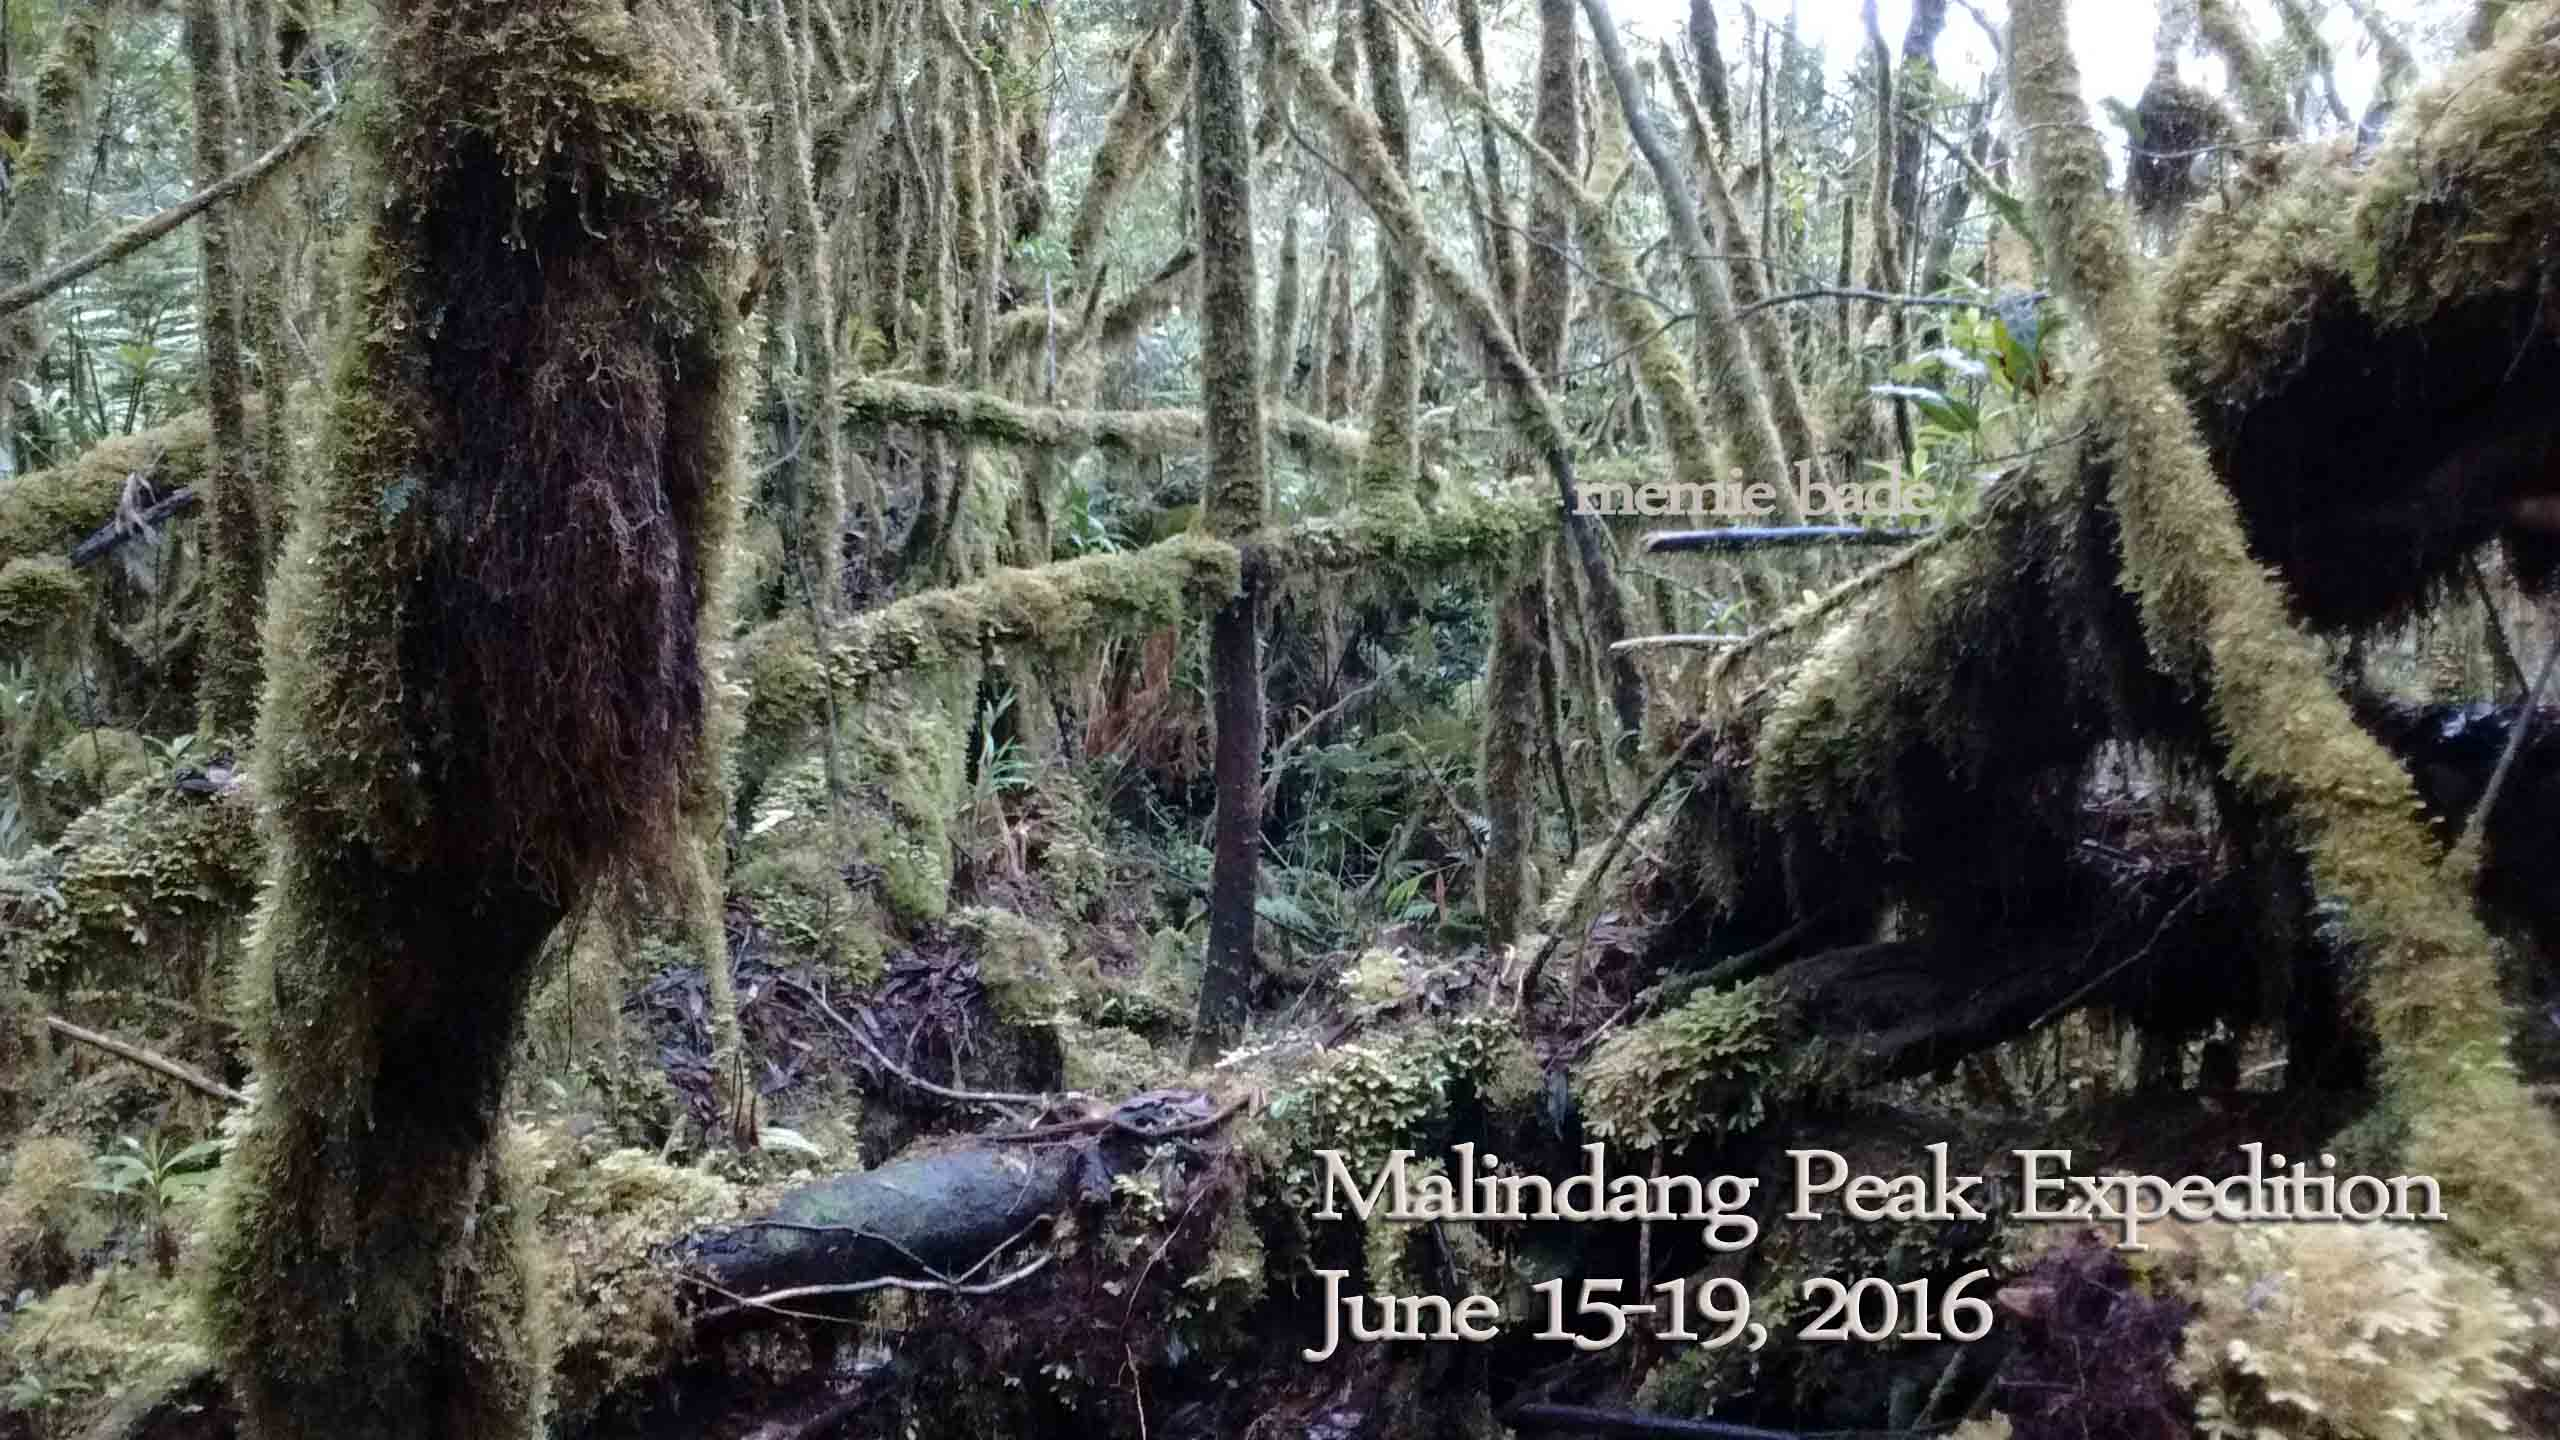 thephotos/2016/malindang peak expedition/IMG_20160618_085753857.jpg